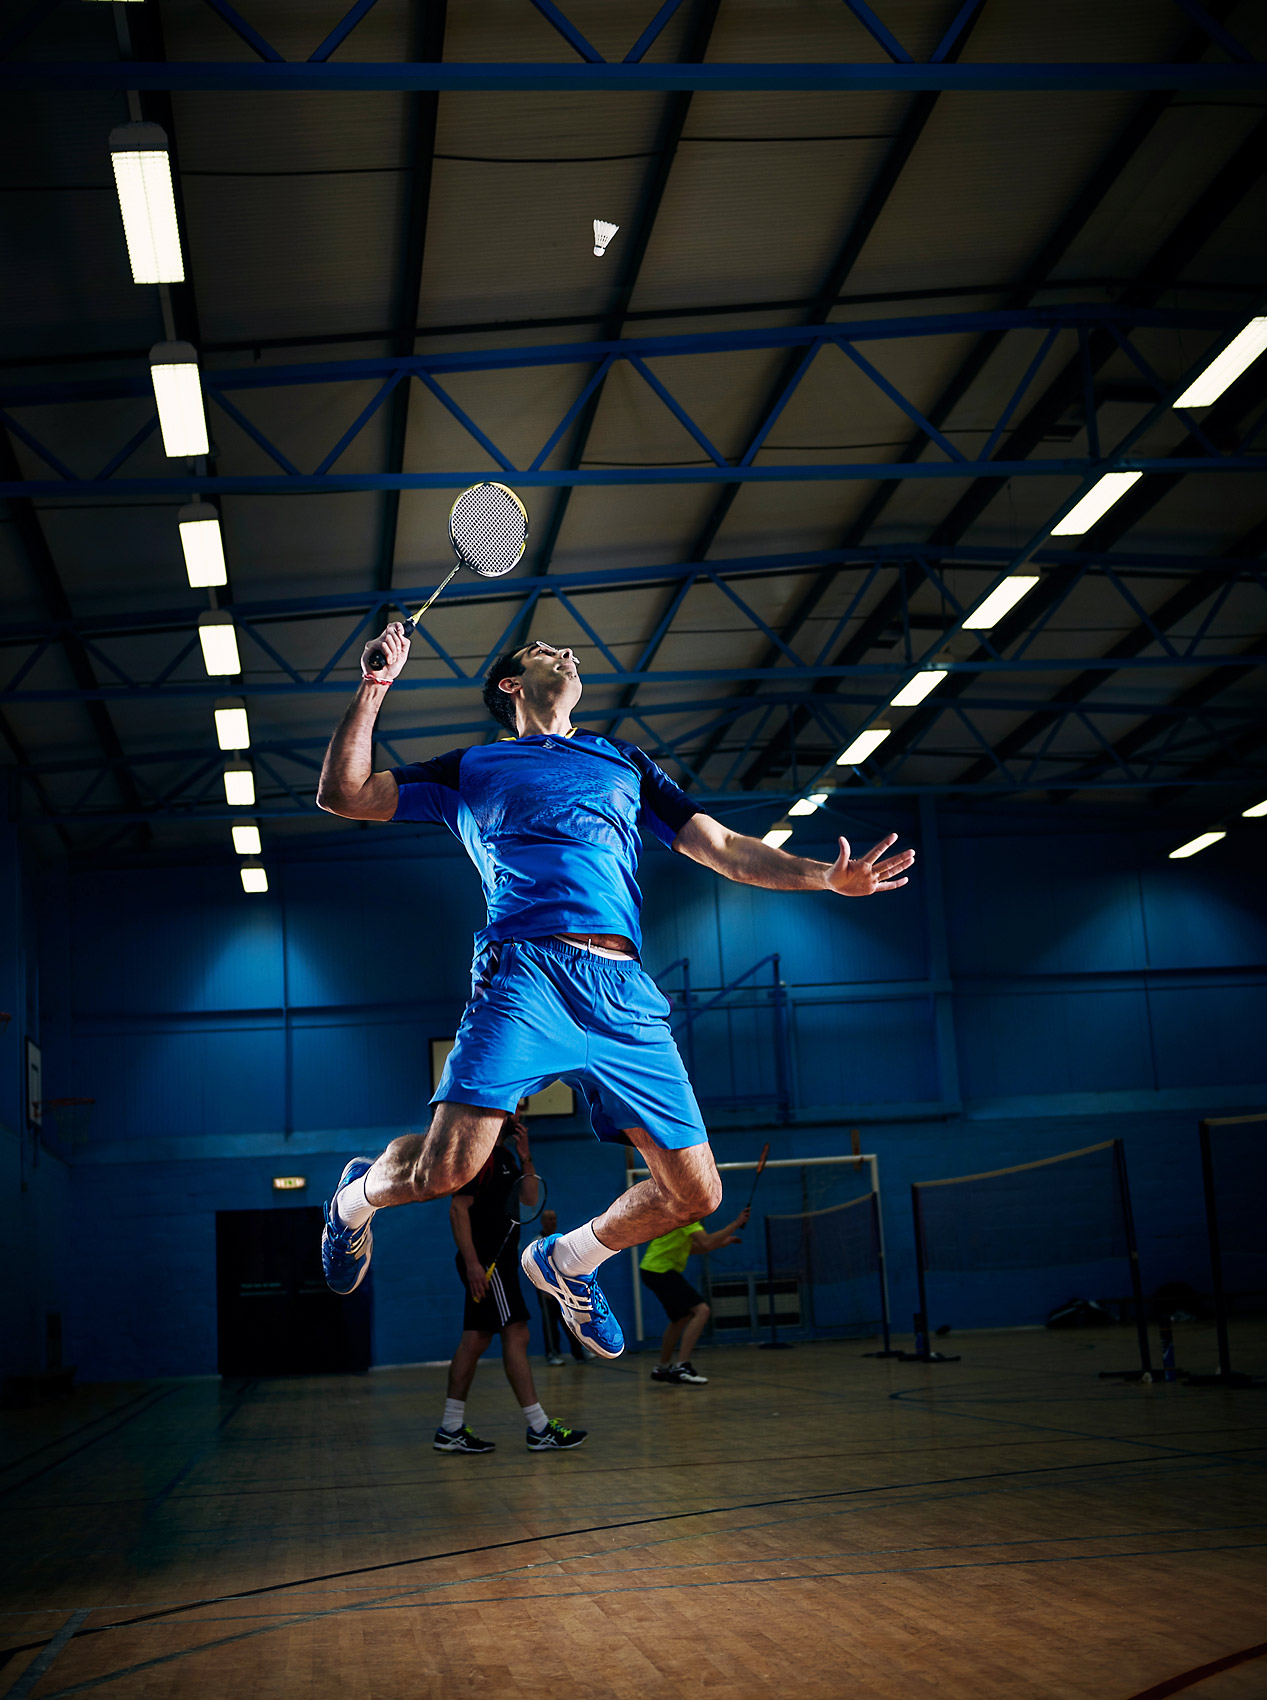 Badminton jumping smash